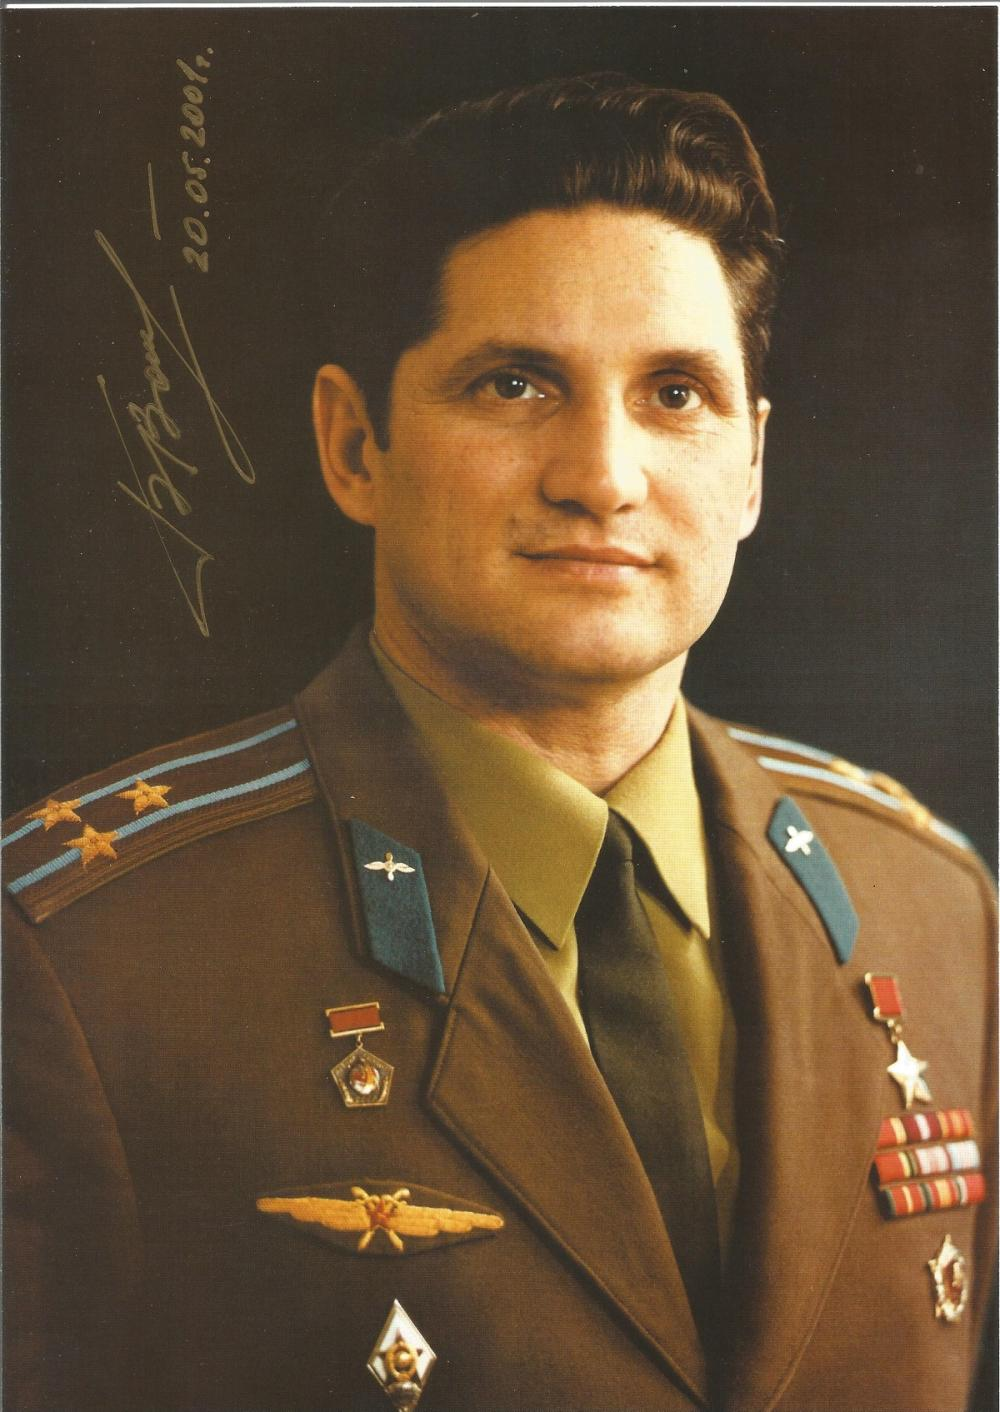 Russian Astronaut Boris Volynov hand signed 12x8 colour printed photo. Personally hand signed in